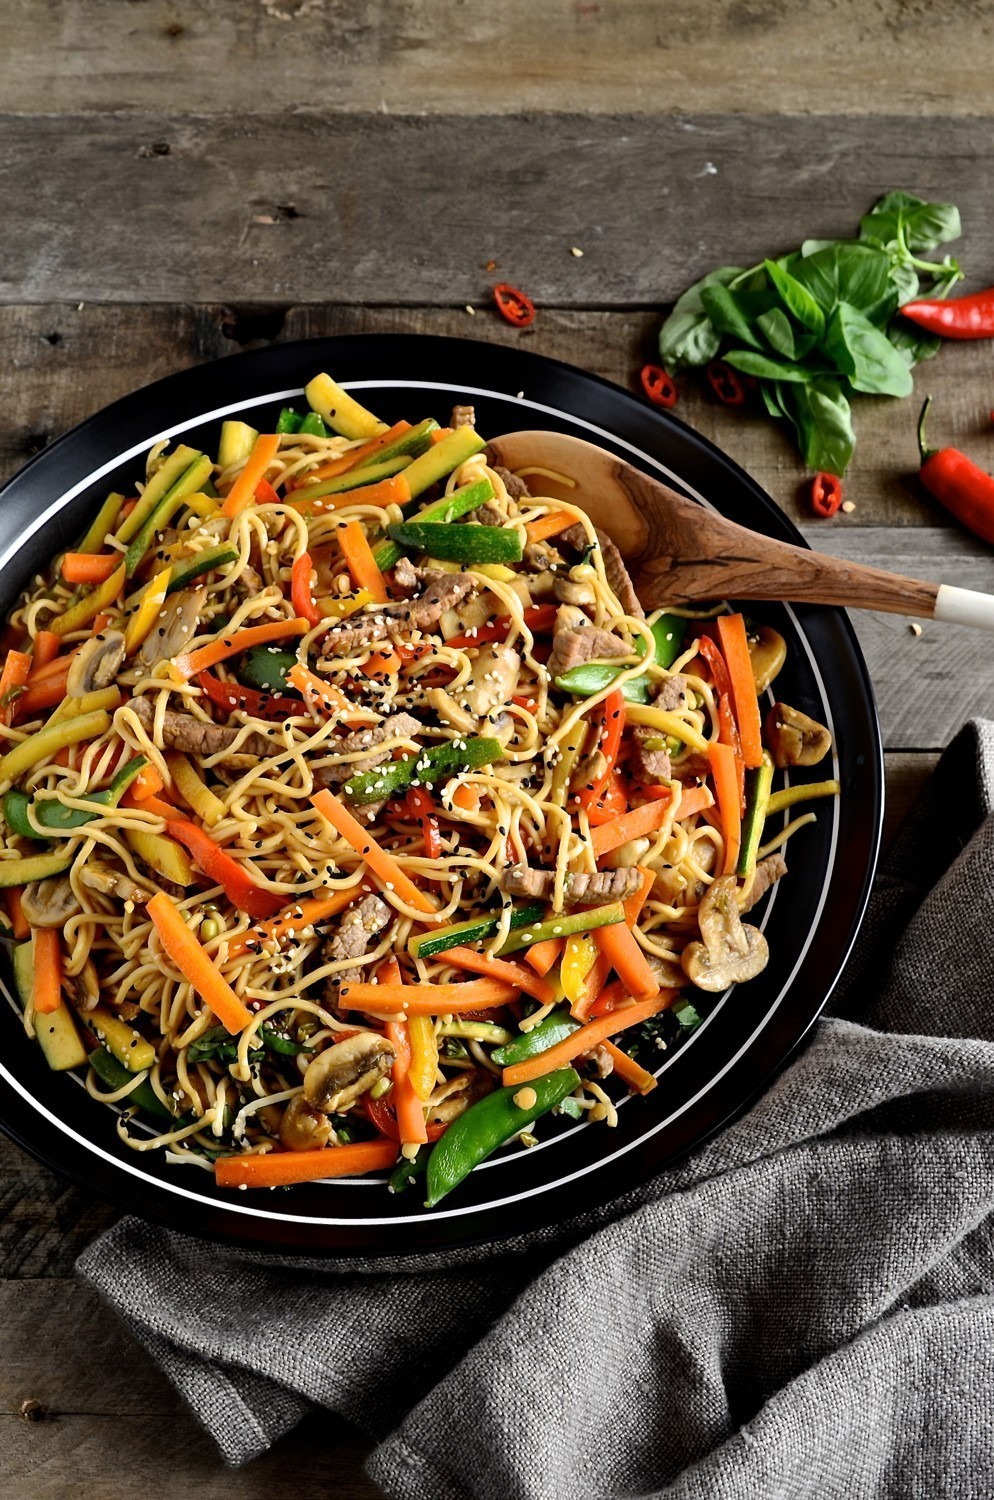 Korean beef stir-fry with egg noodles | Bibbys Kitchen recipes